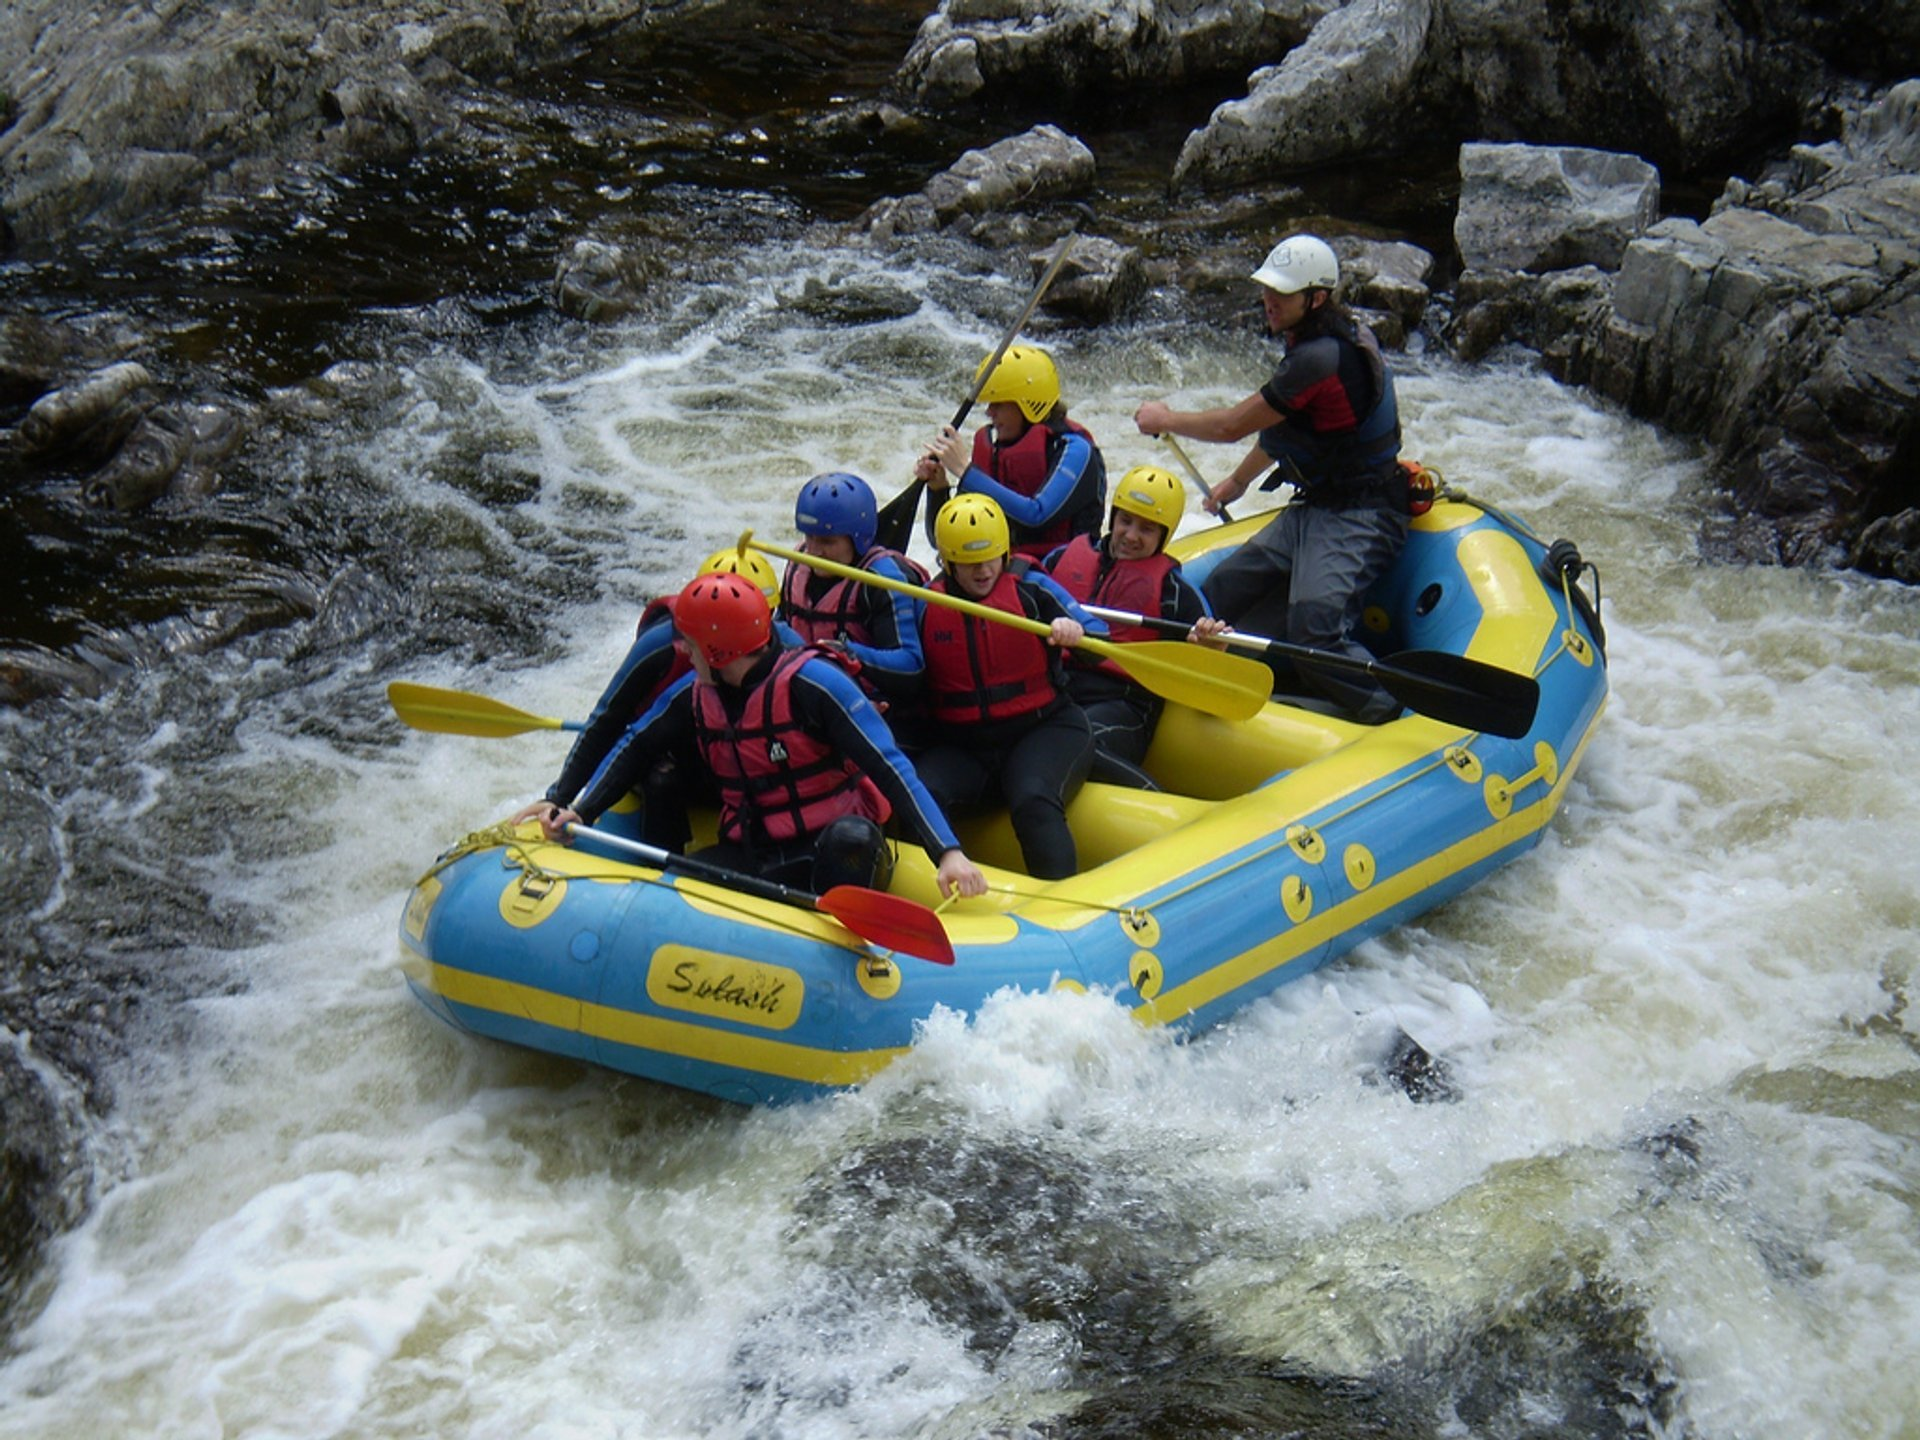 White Water Rafting in Scotland 2020 - Best Time